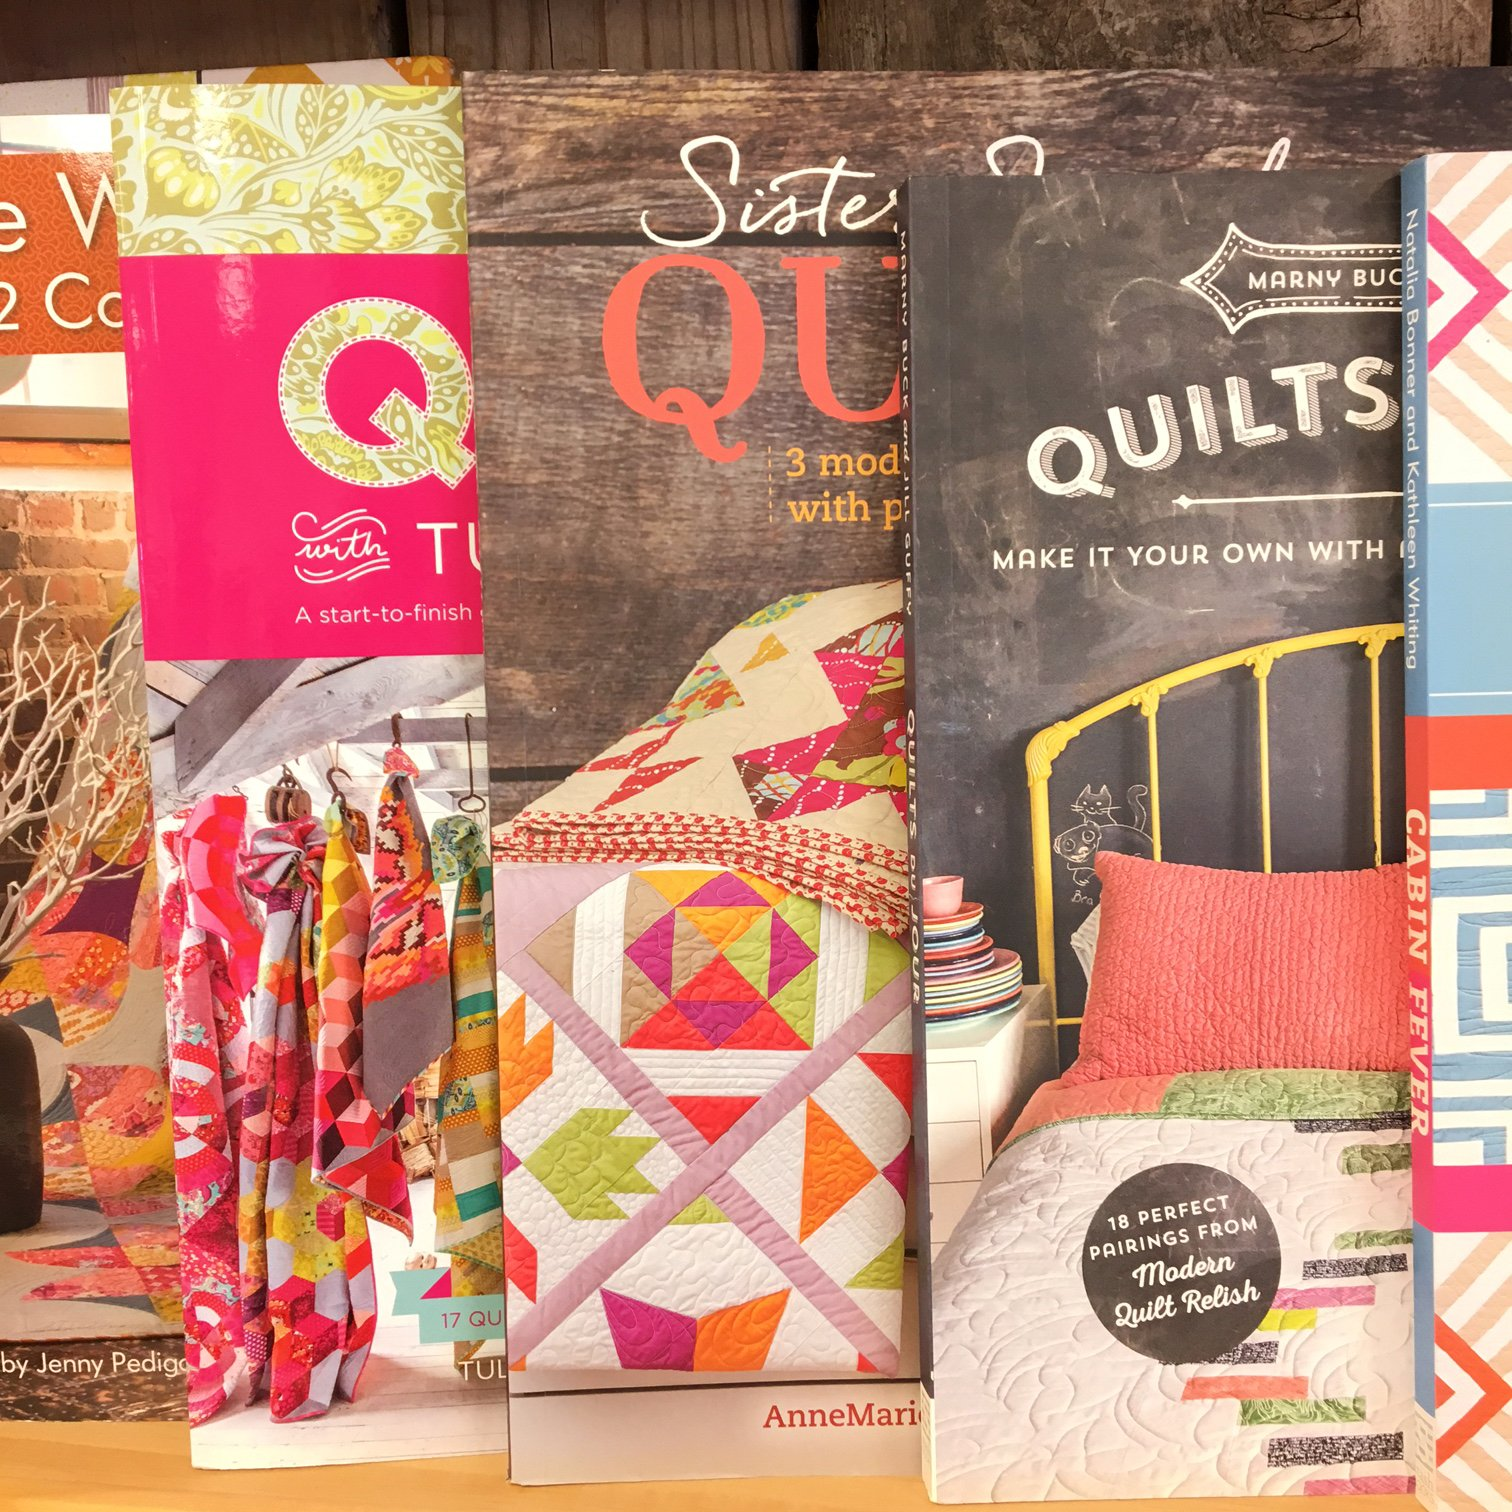 Sewing, Quilting, Knitting and Crochet Patterns & Books